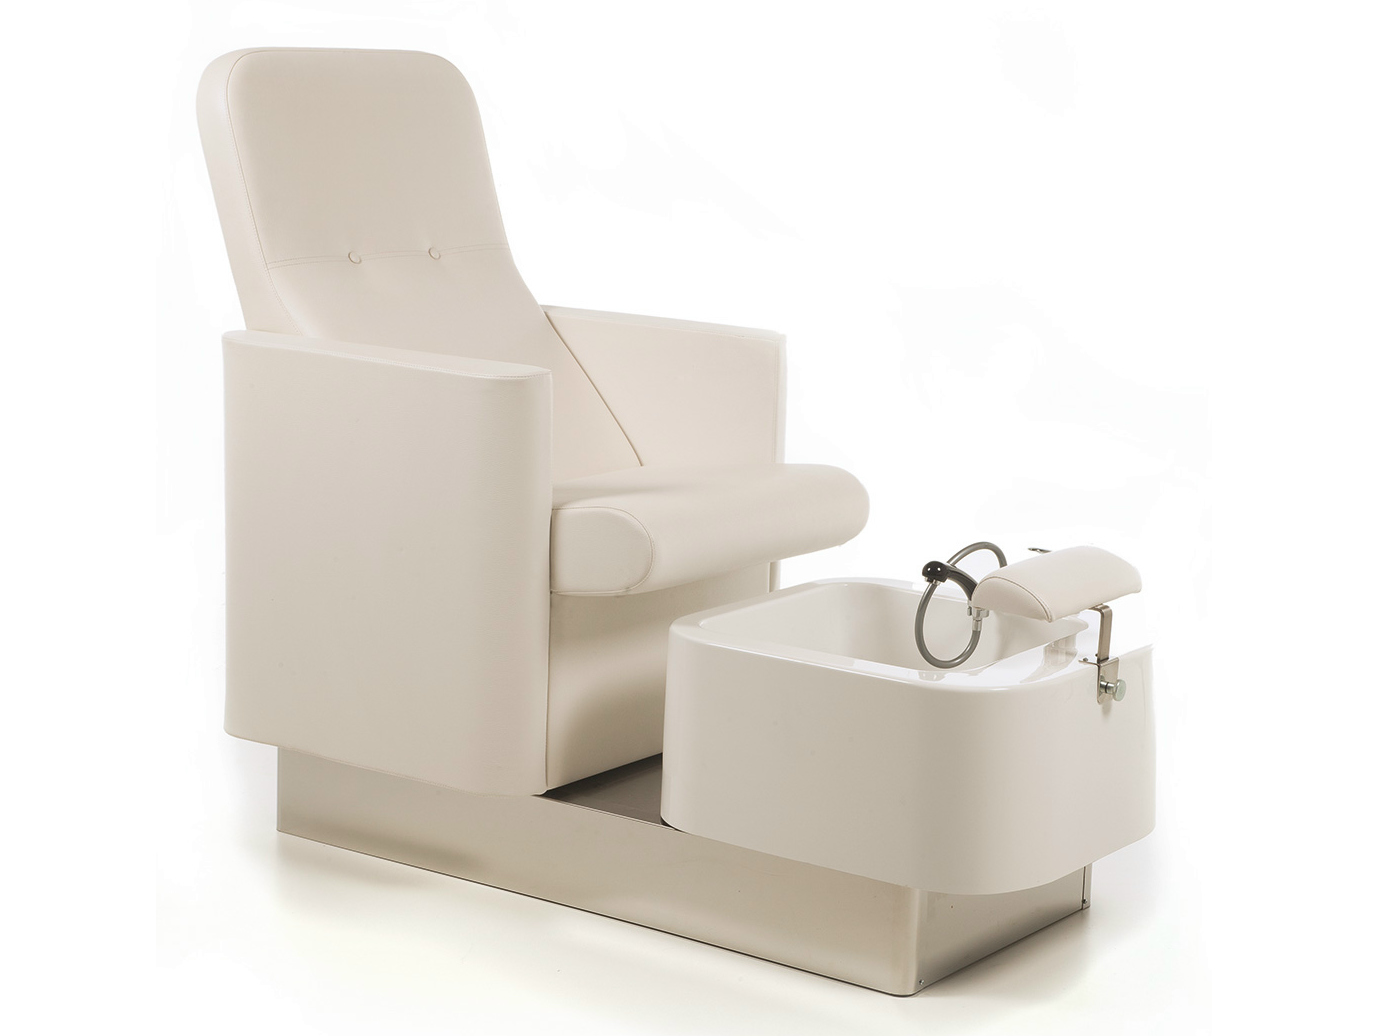 poltrona per pedicure hydrolounge by gamma bross. Black Bedroom Furniture Sets. Home Design Ideas